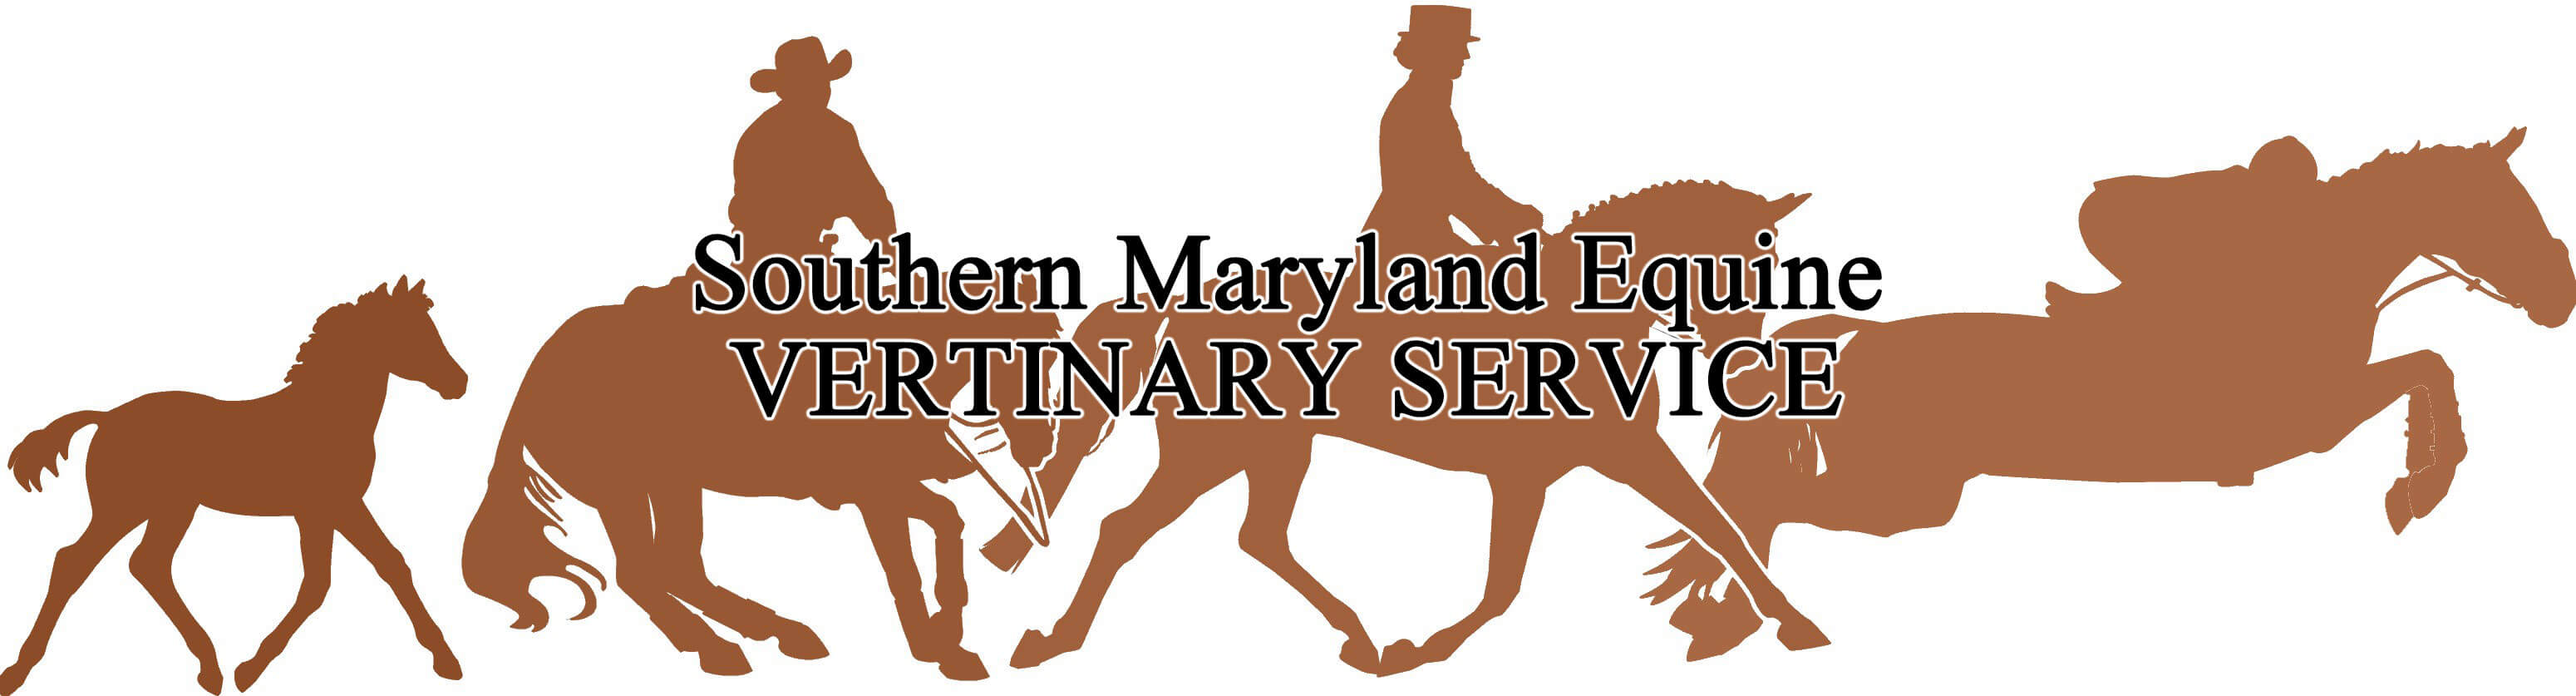 Southern Maryland Equine Veterinary Service, Inc.